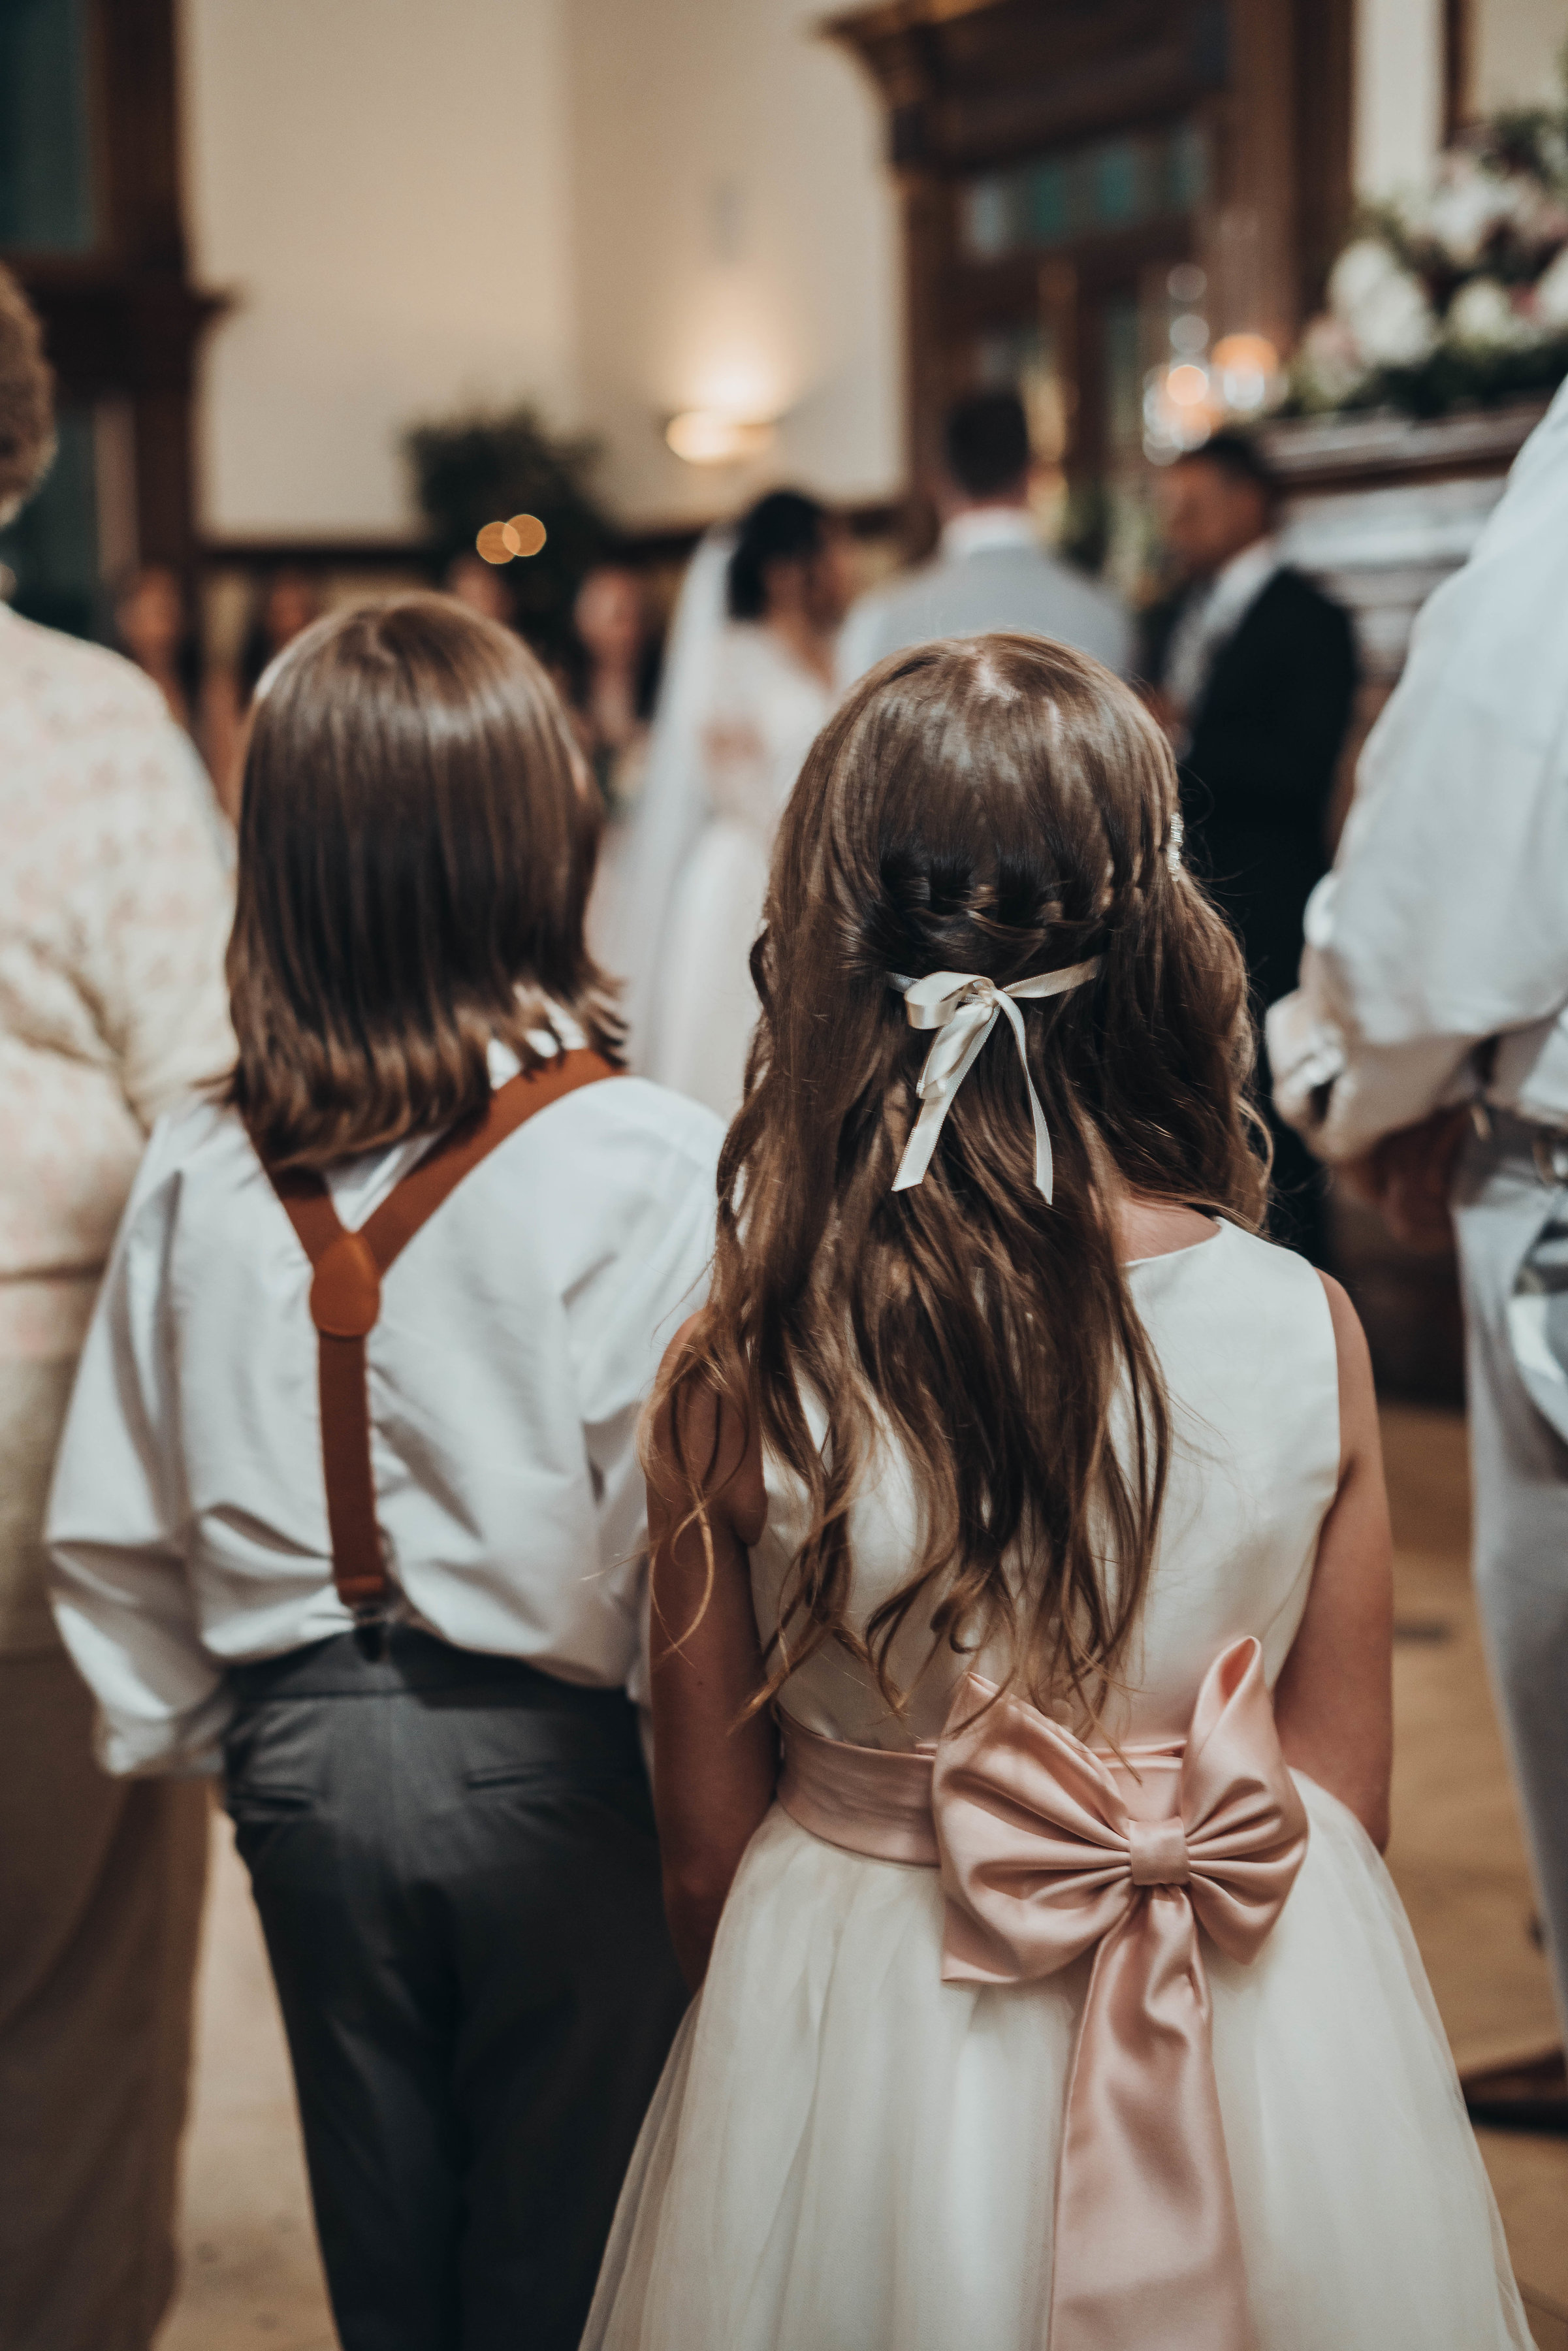 Groom's Children Ring Bearer and Flower Girl Watching Dad Get Re-Married Kids